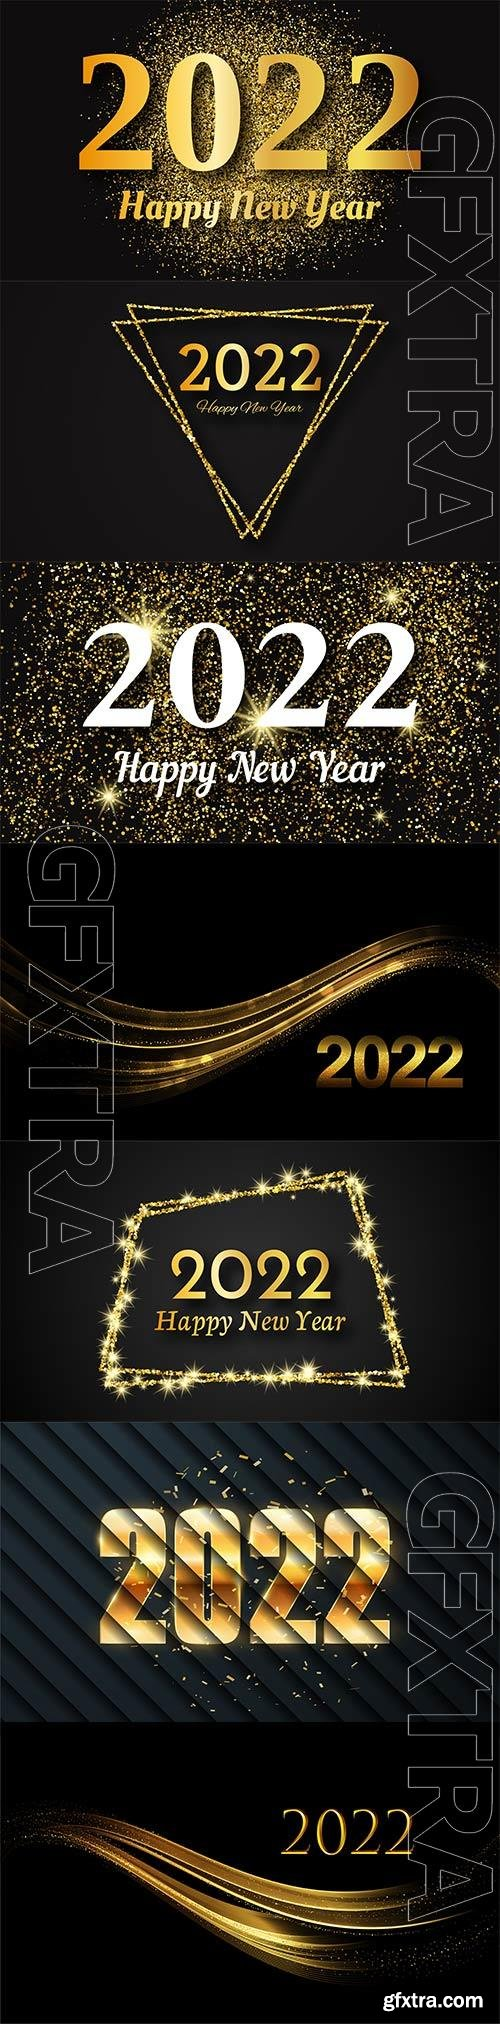 2022 happy new year vector background, gold inscription in a gold glitter